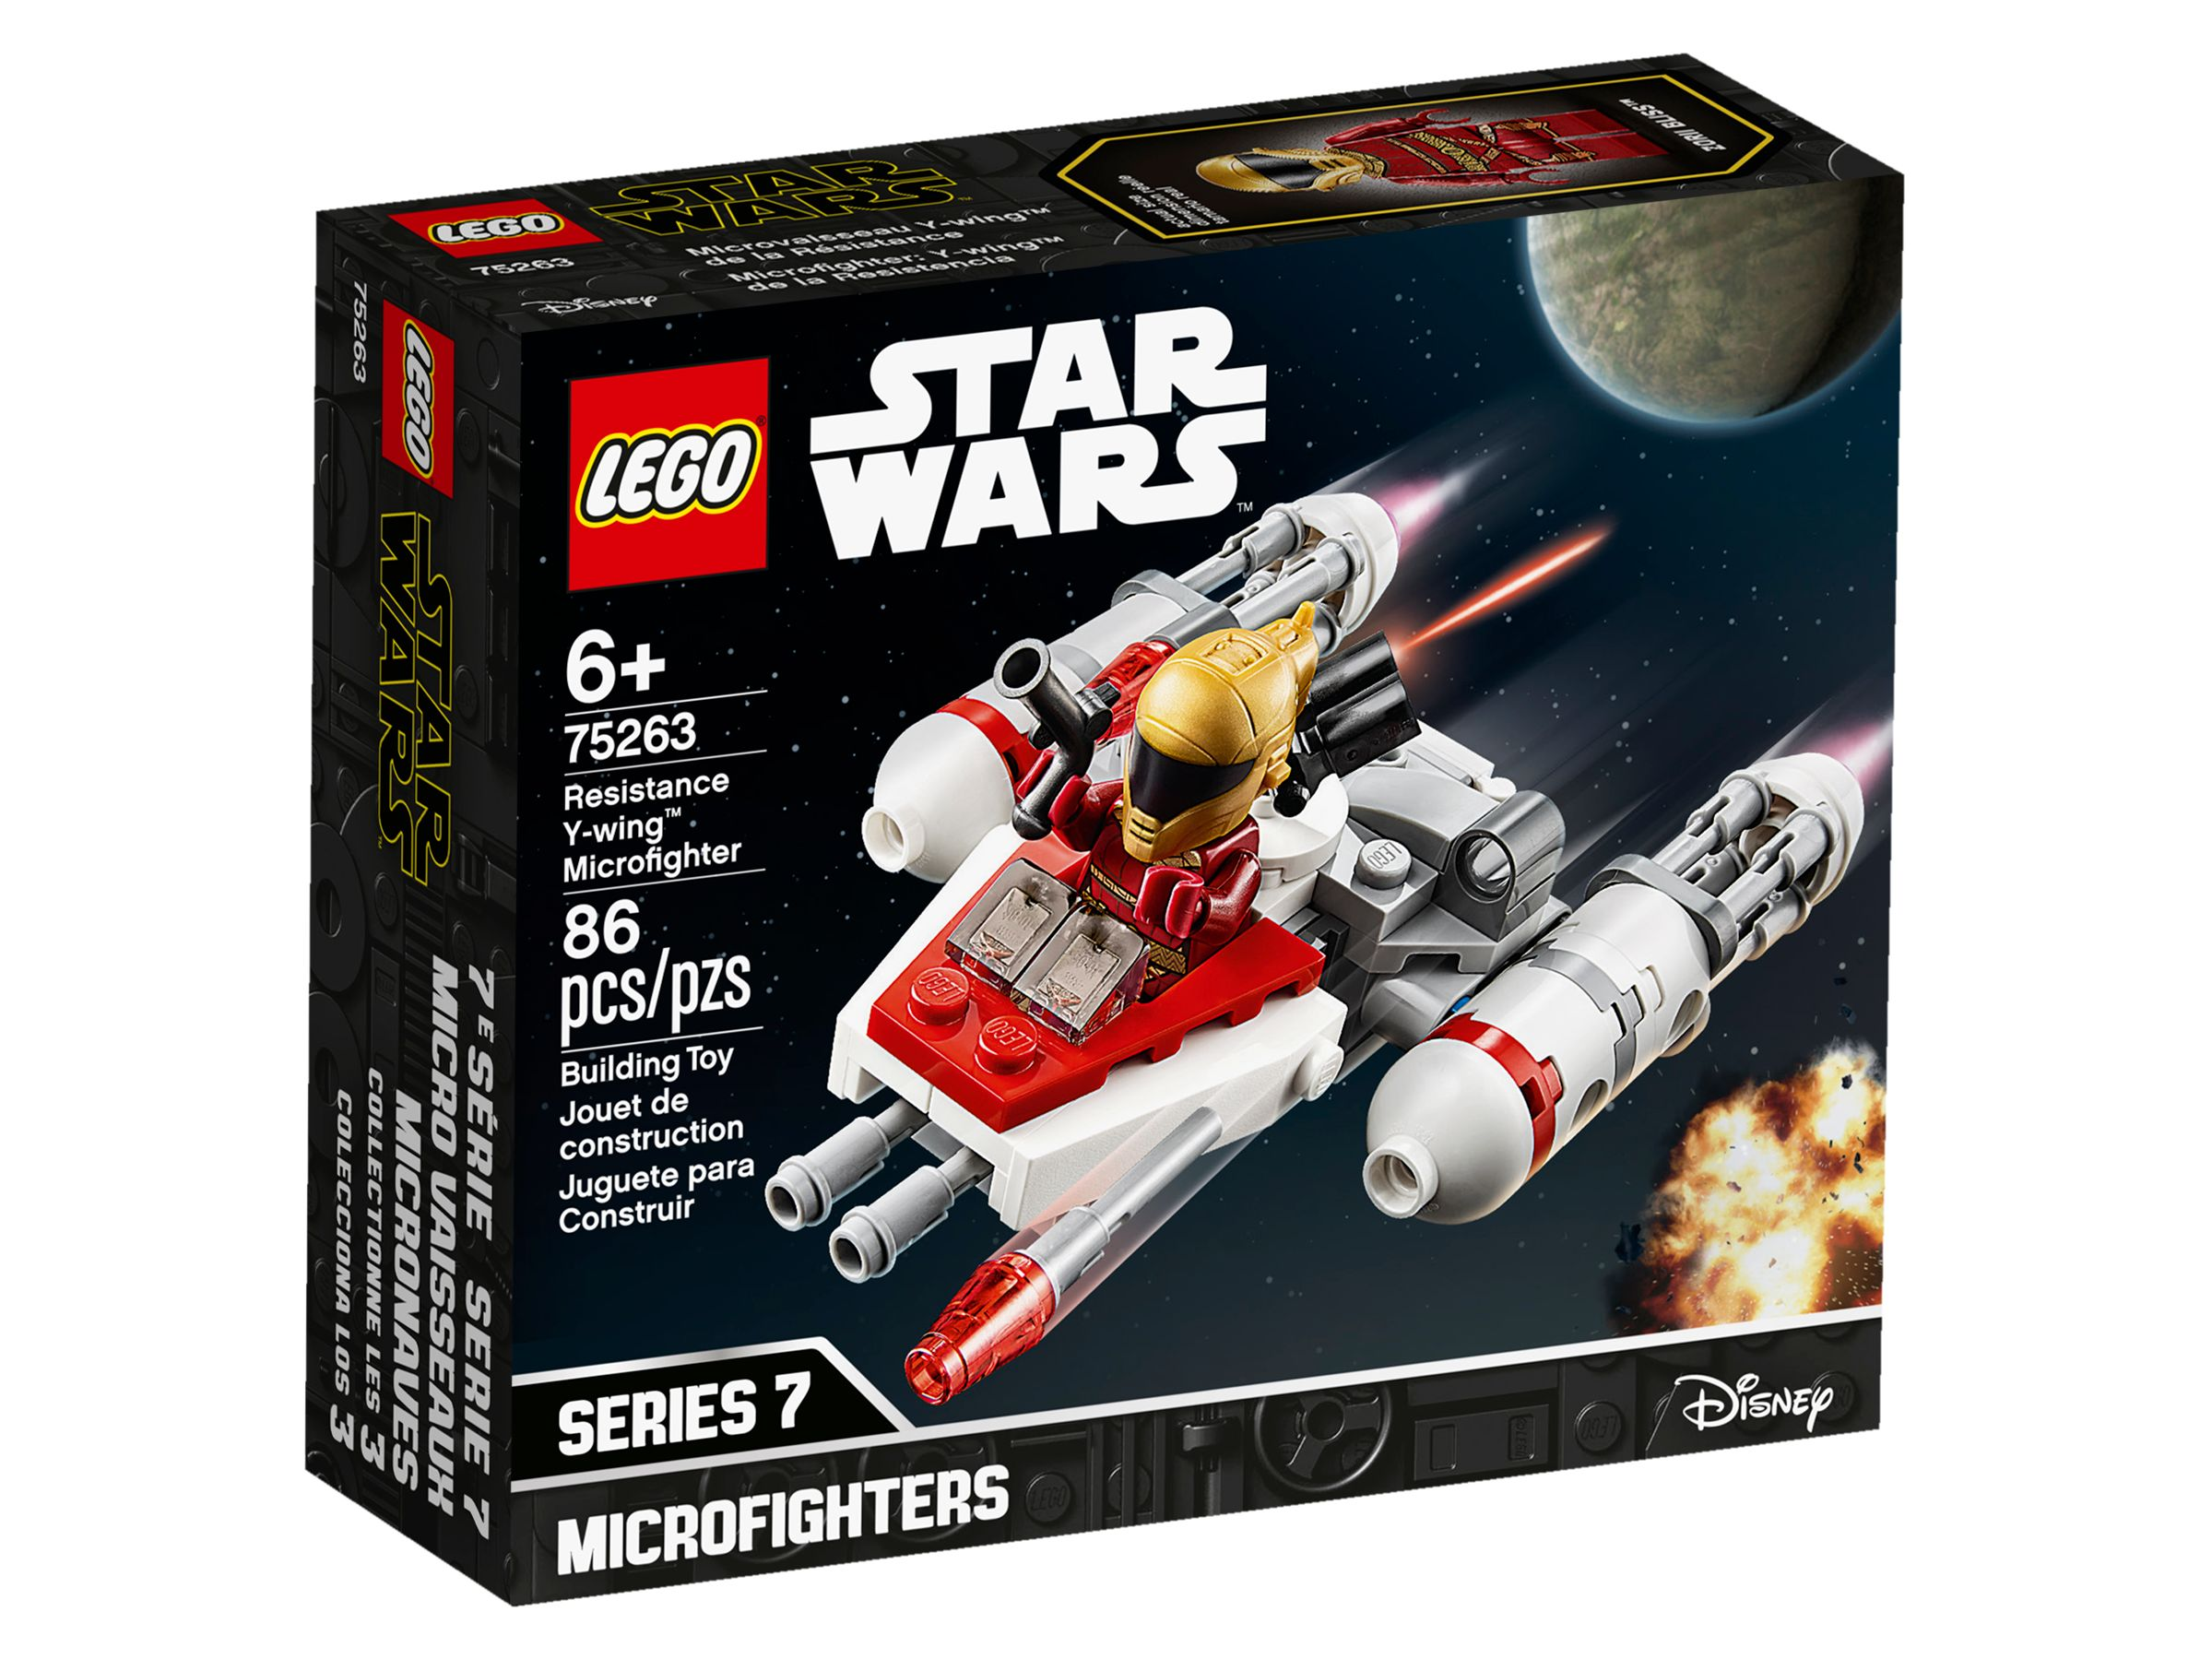 LEGO Star Wars 75263 Widerstands Y-Wing™ Microfighter LEGO_75263_alt1.jpg